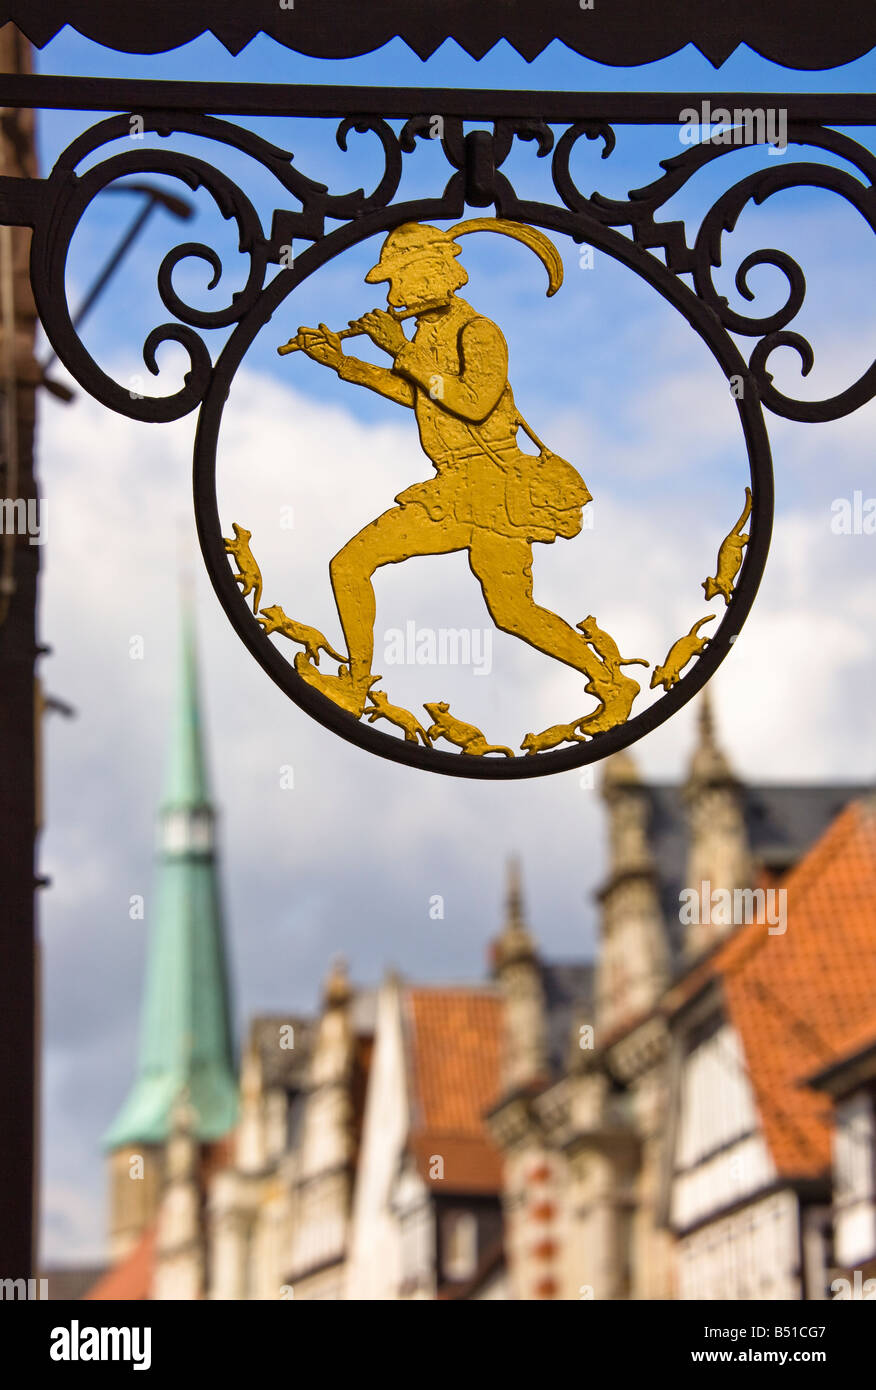 Pied Piper of Hamelin sign on Rattenfangerhaus Germany - Stock Image